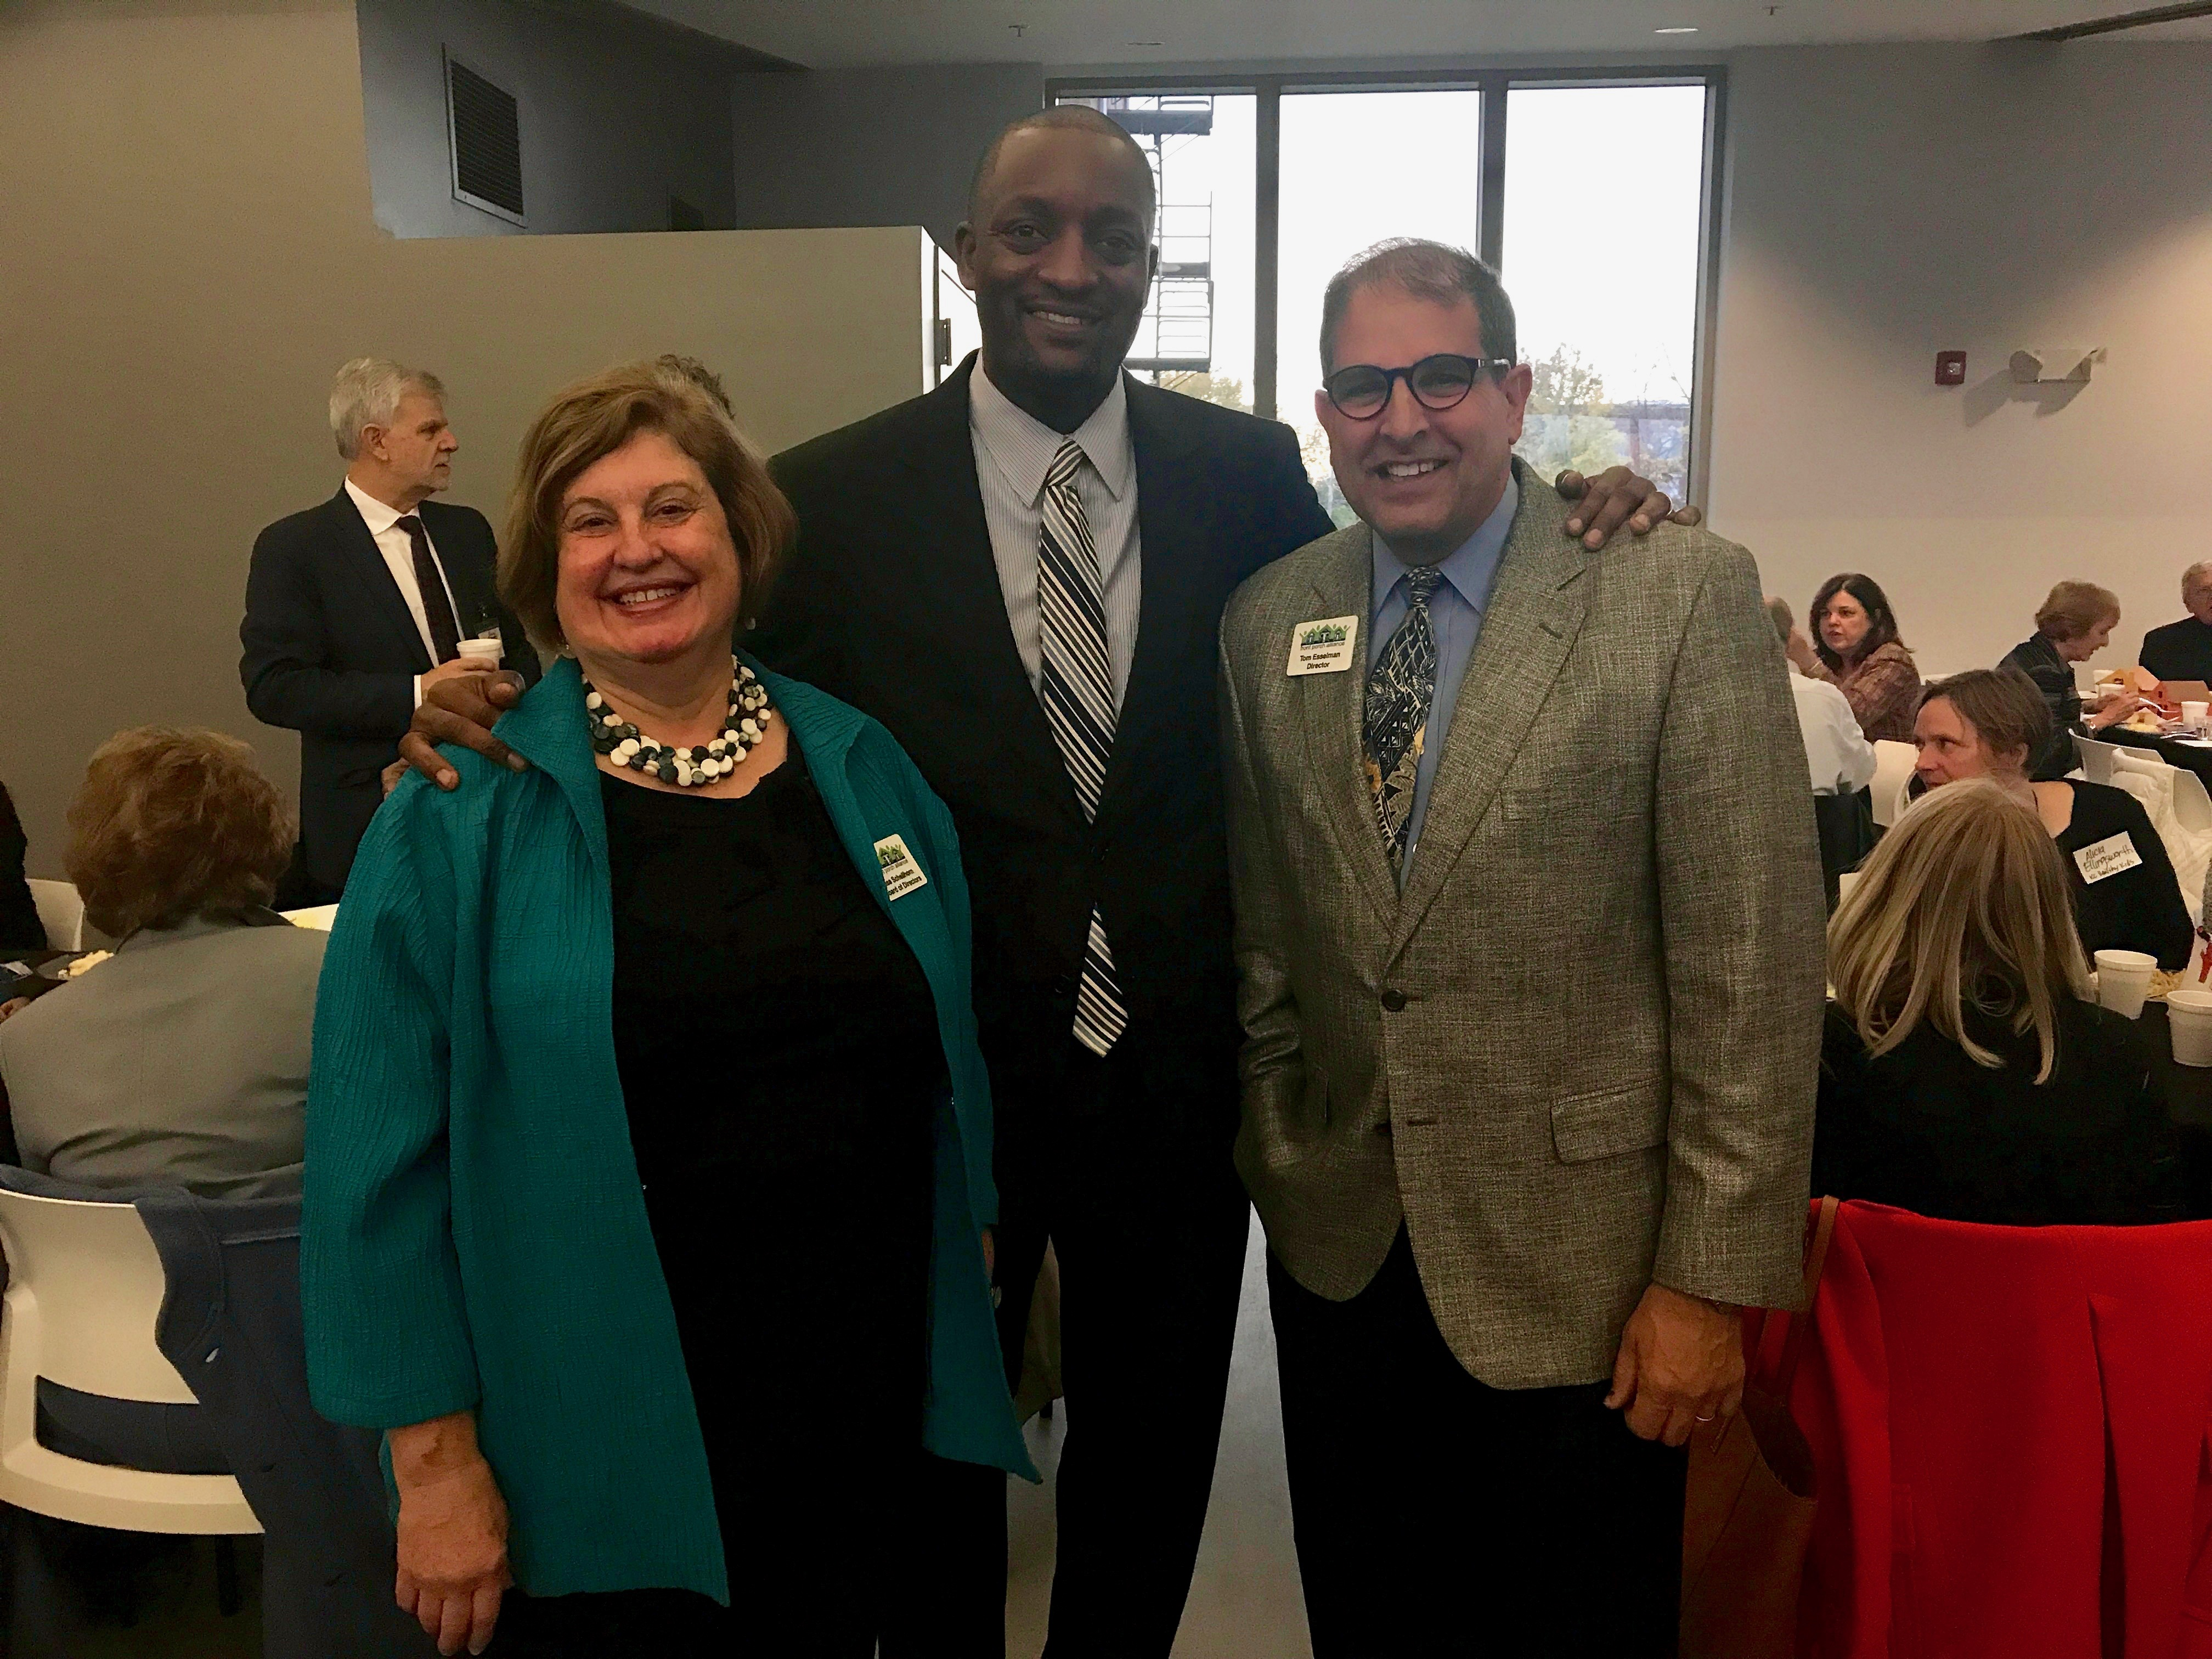 Lisa Schellhorn, board member; Dr. Mark Bedell, Superintendent KCPS; Tom Esselman at the Rise and Shine Breakfast.